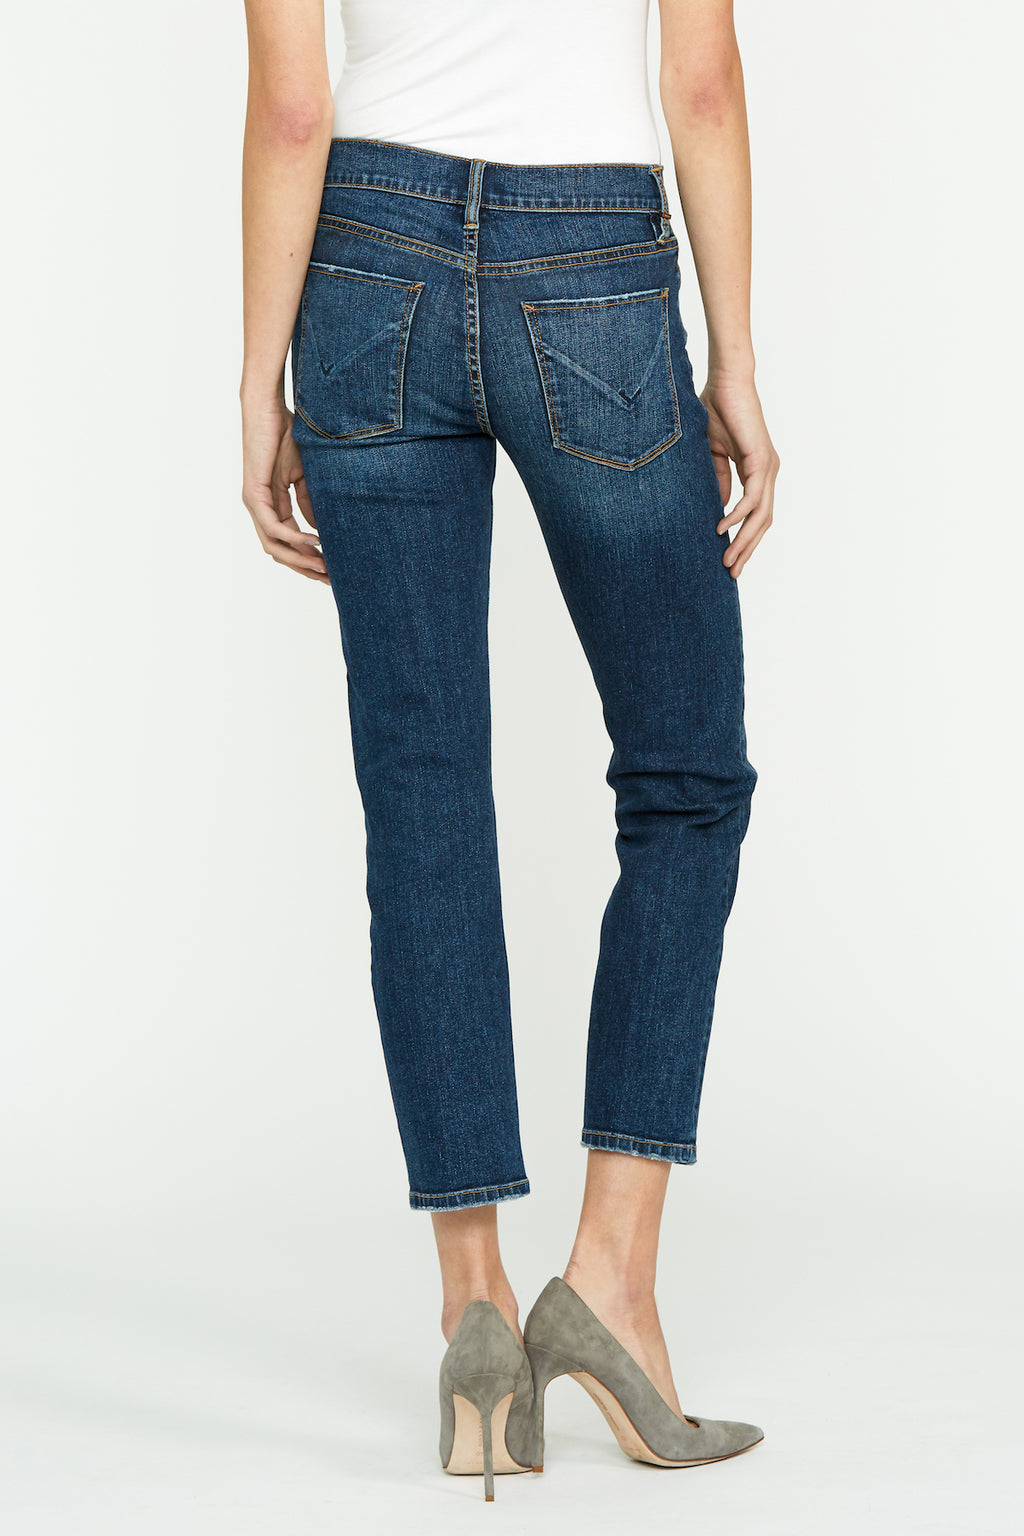 3c7734c9004 Women's Denim Straight – Hudson Jeans